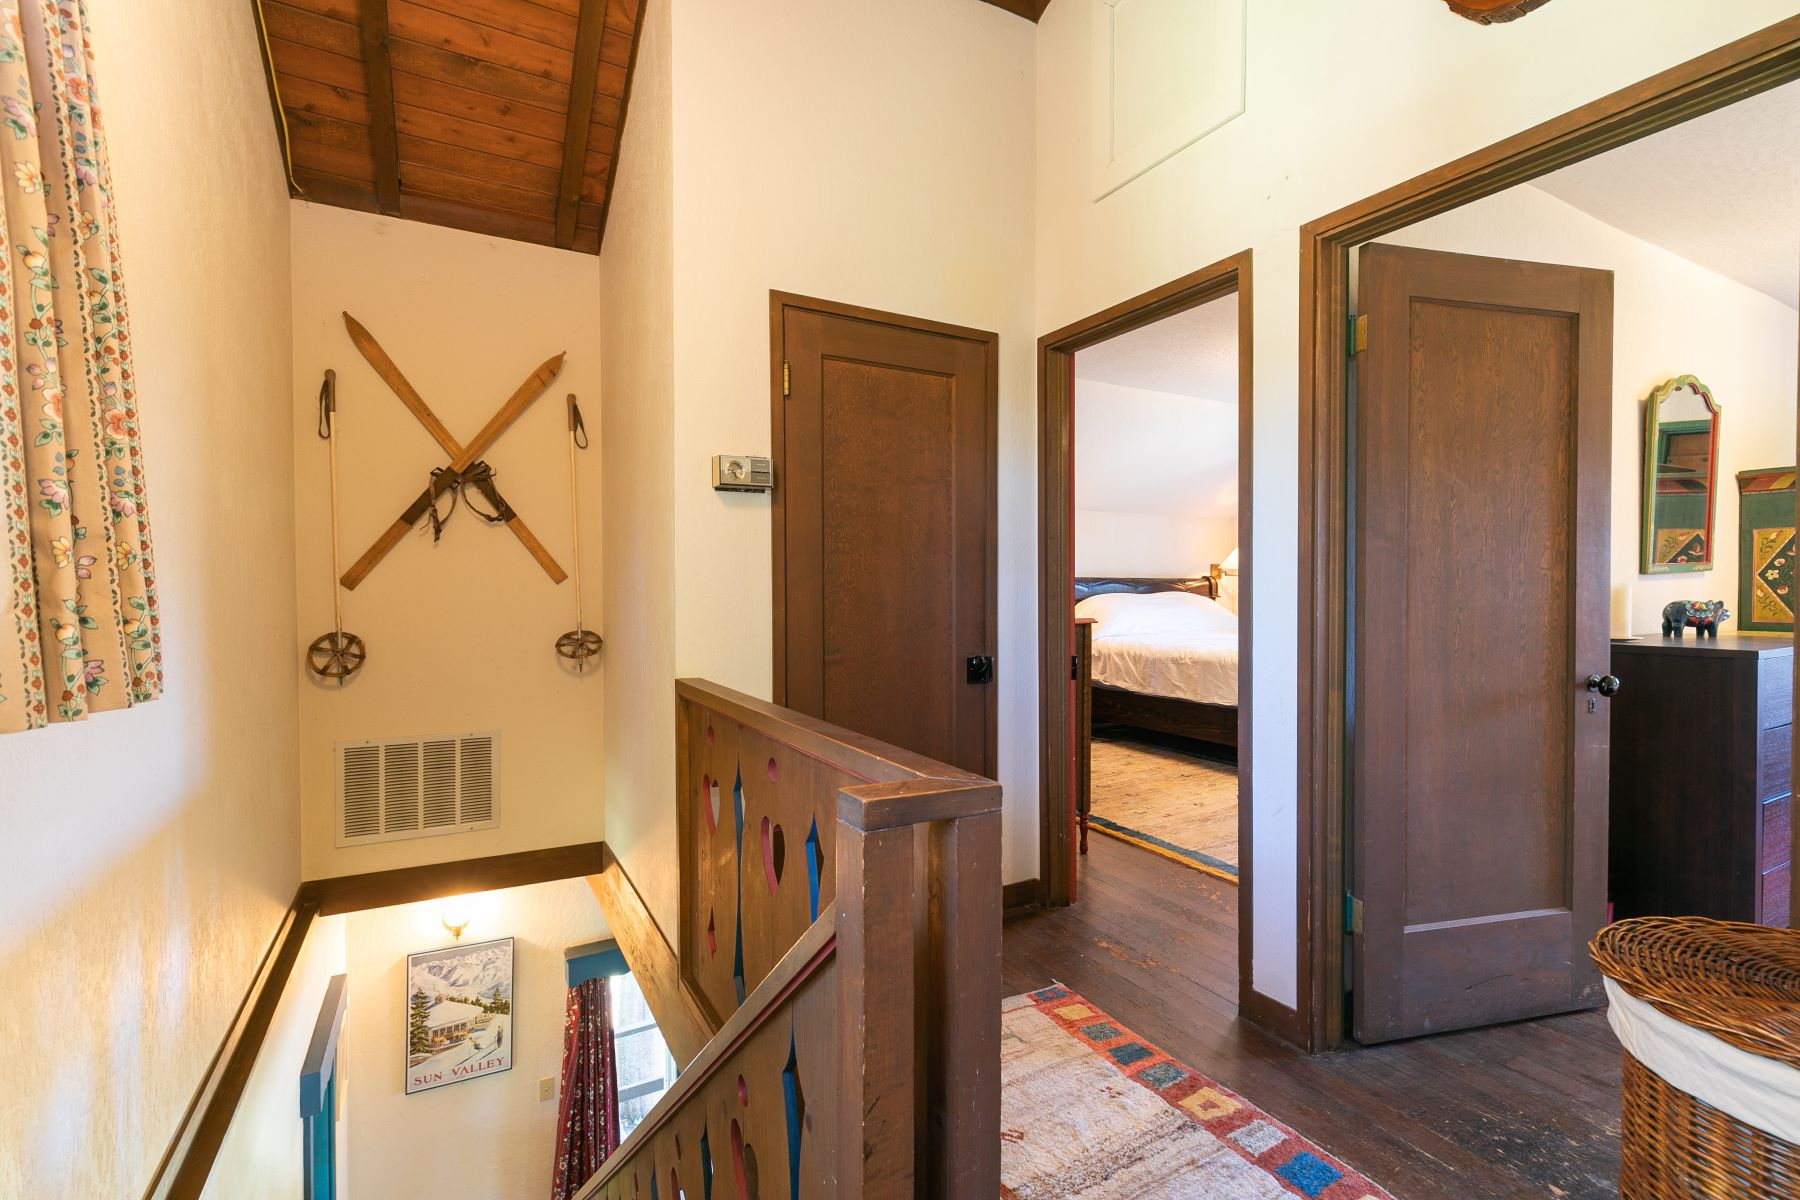 Additional photo for property listing at Iconic Sugar Bowl Cabin 58555 Corn Lily Lane Norden, California 95724 United States